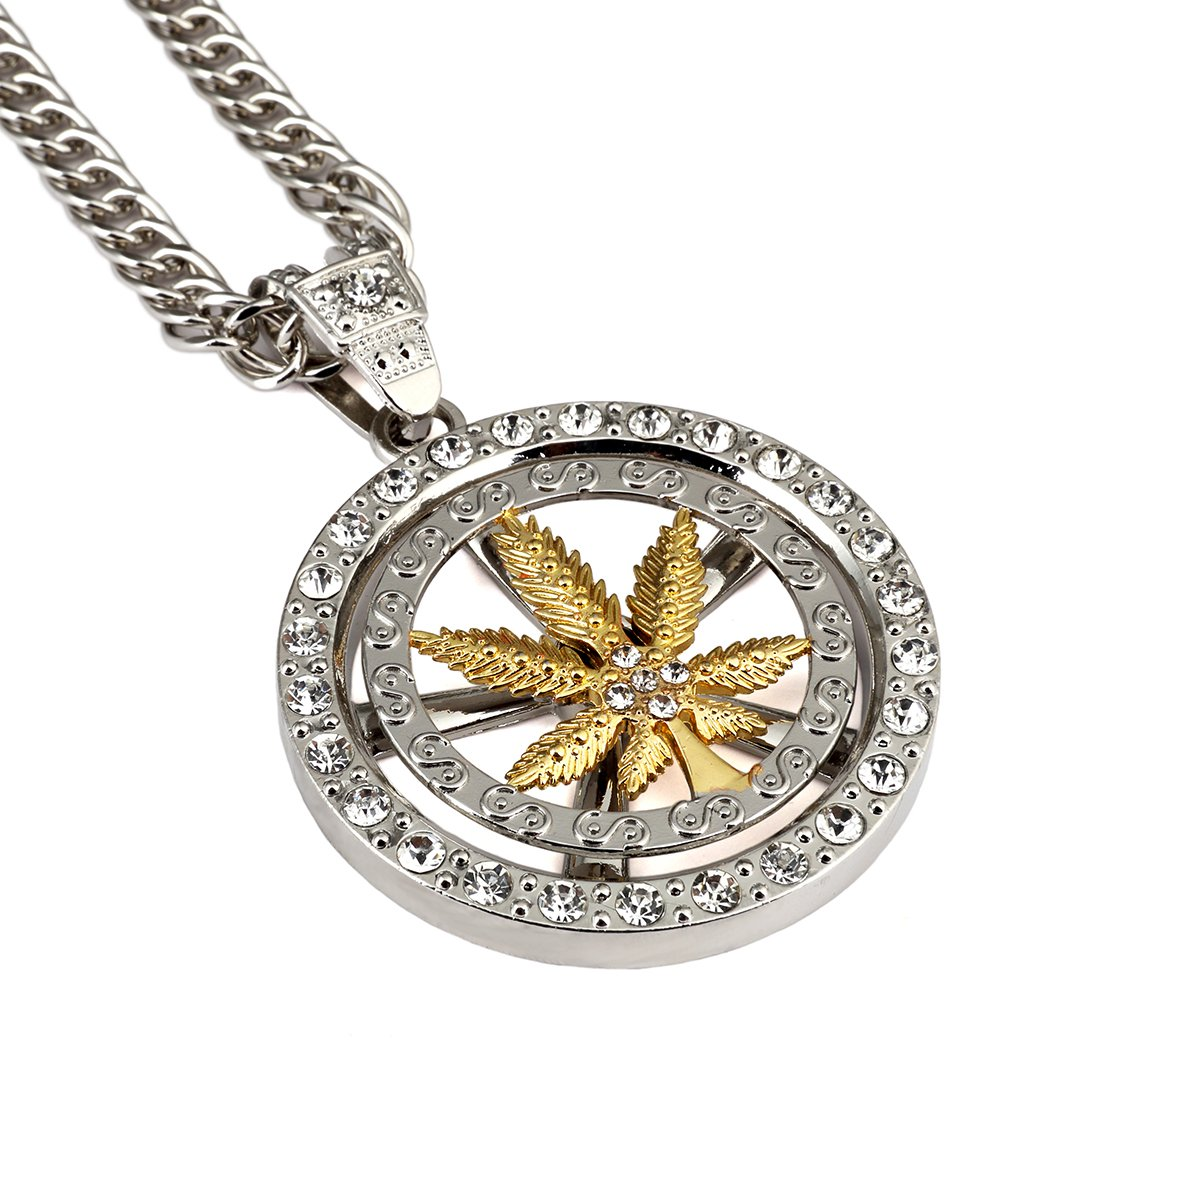 Hip Hop Necklace Hemp Leaf Round Pendant Long Chain Gold Plated Necklace Jewelry MCSAYS XH1007_Silver